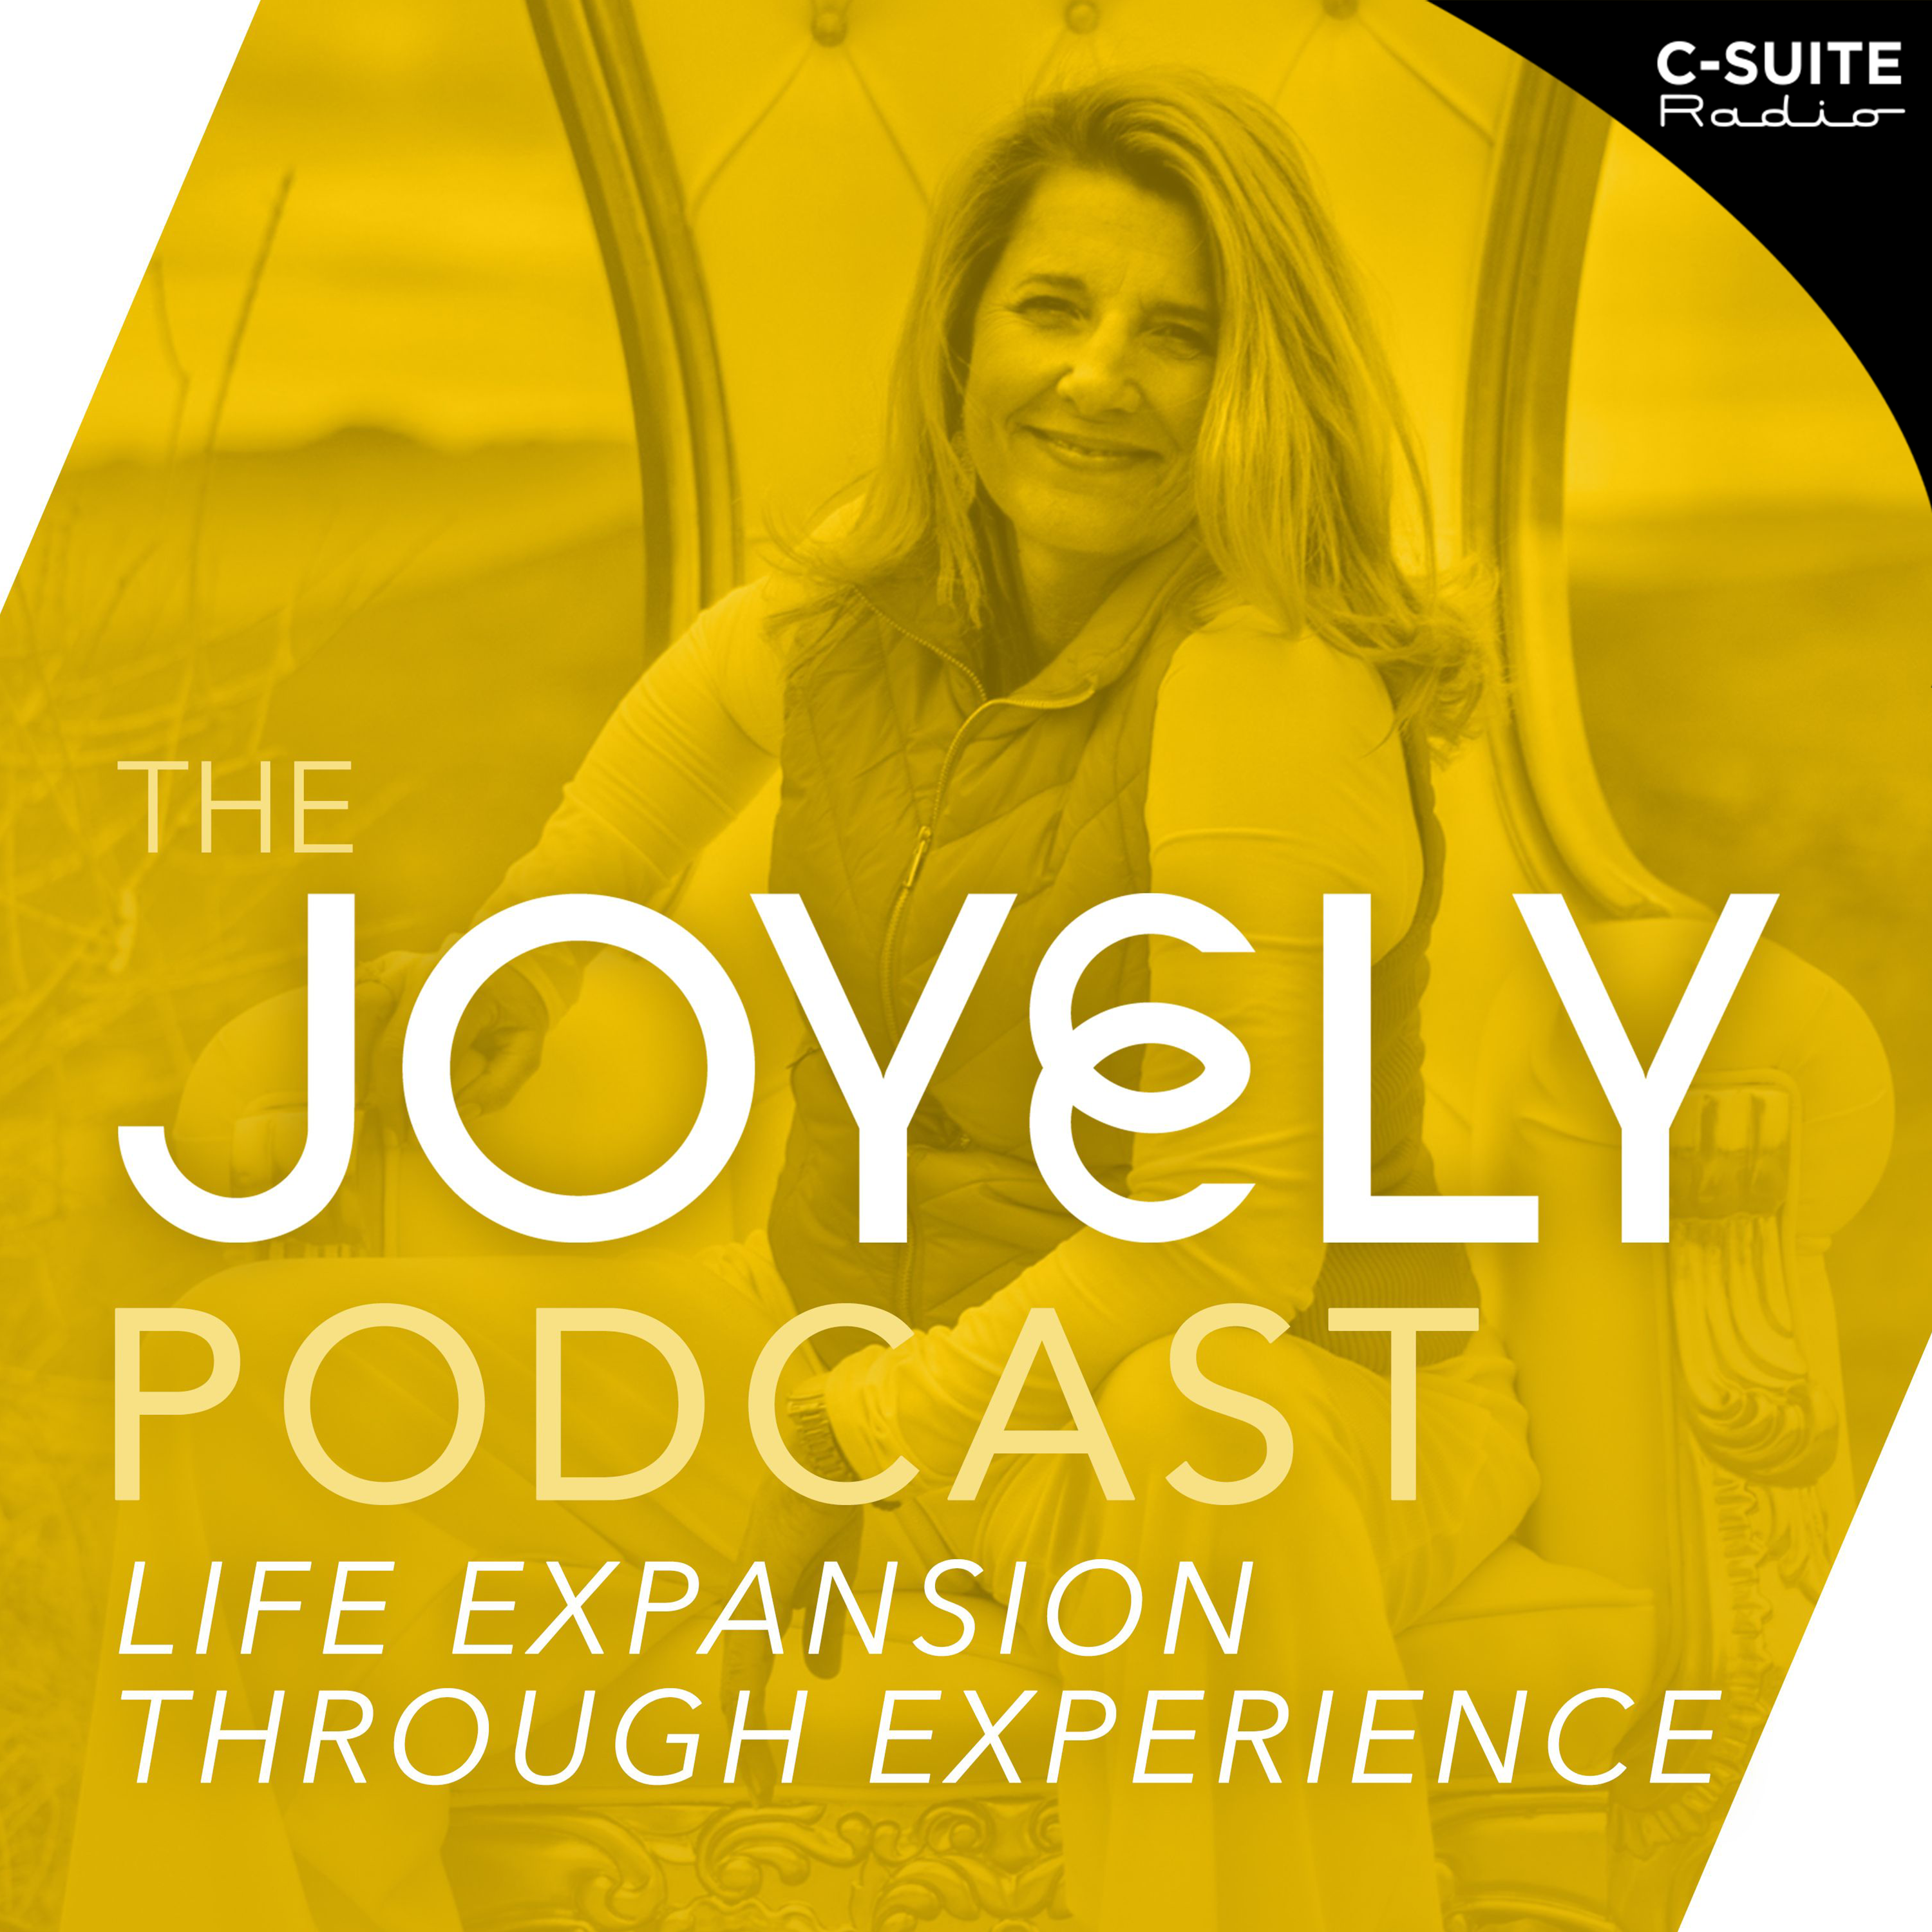 The Joyely Podcast